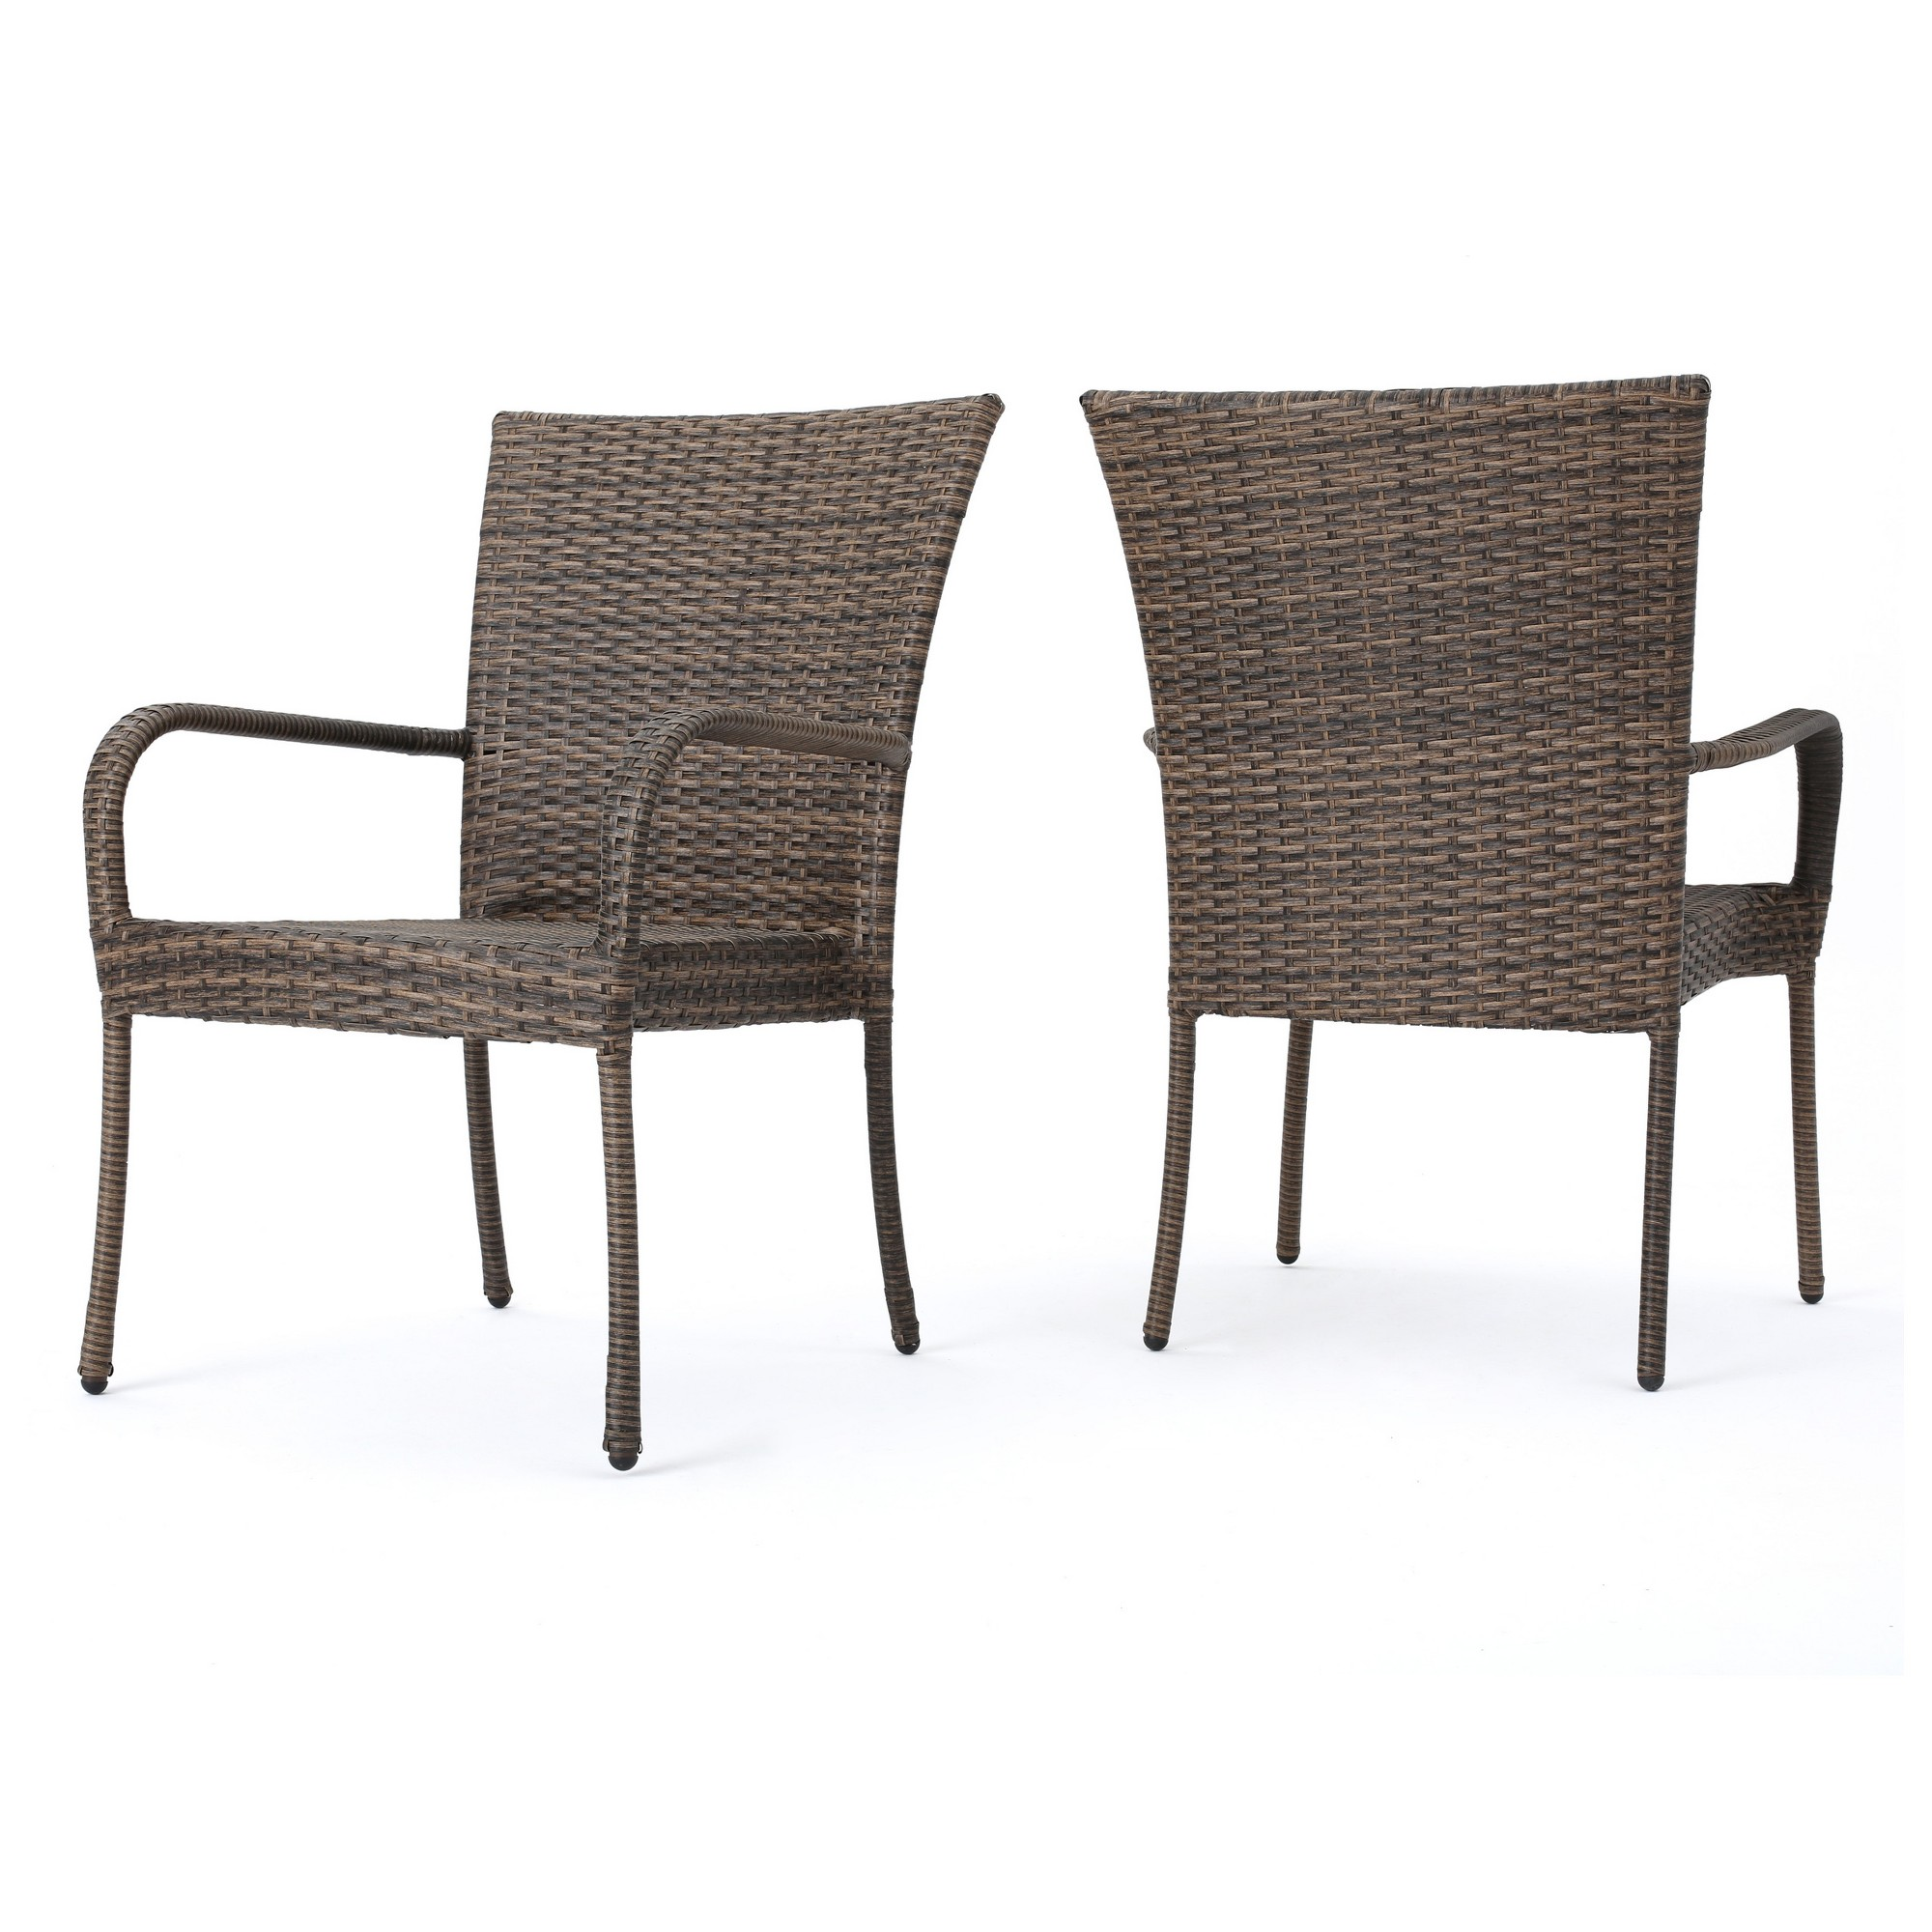 Christopher Knight Home Littleton Set of 2 Wicker Stackable Club ...